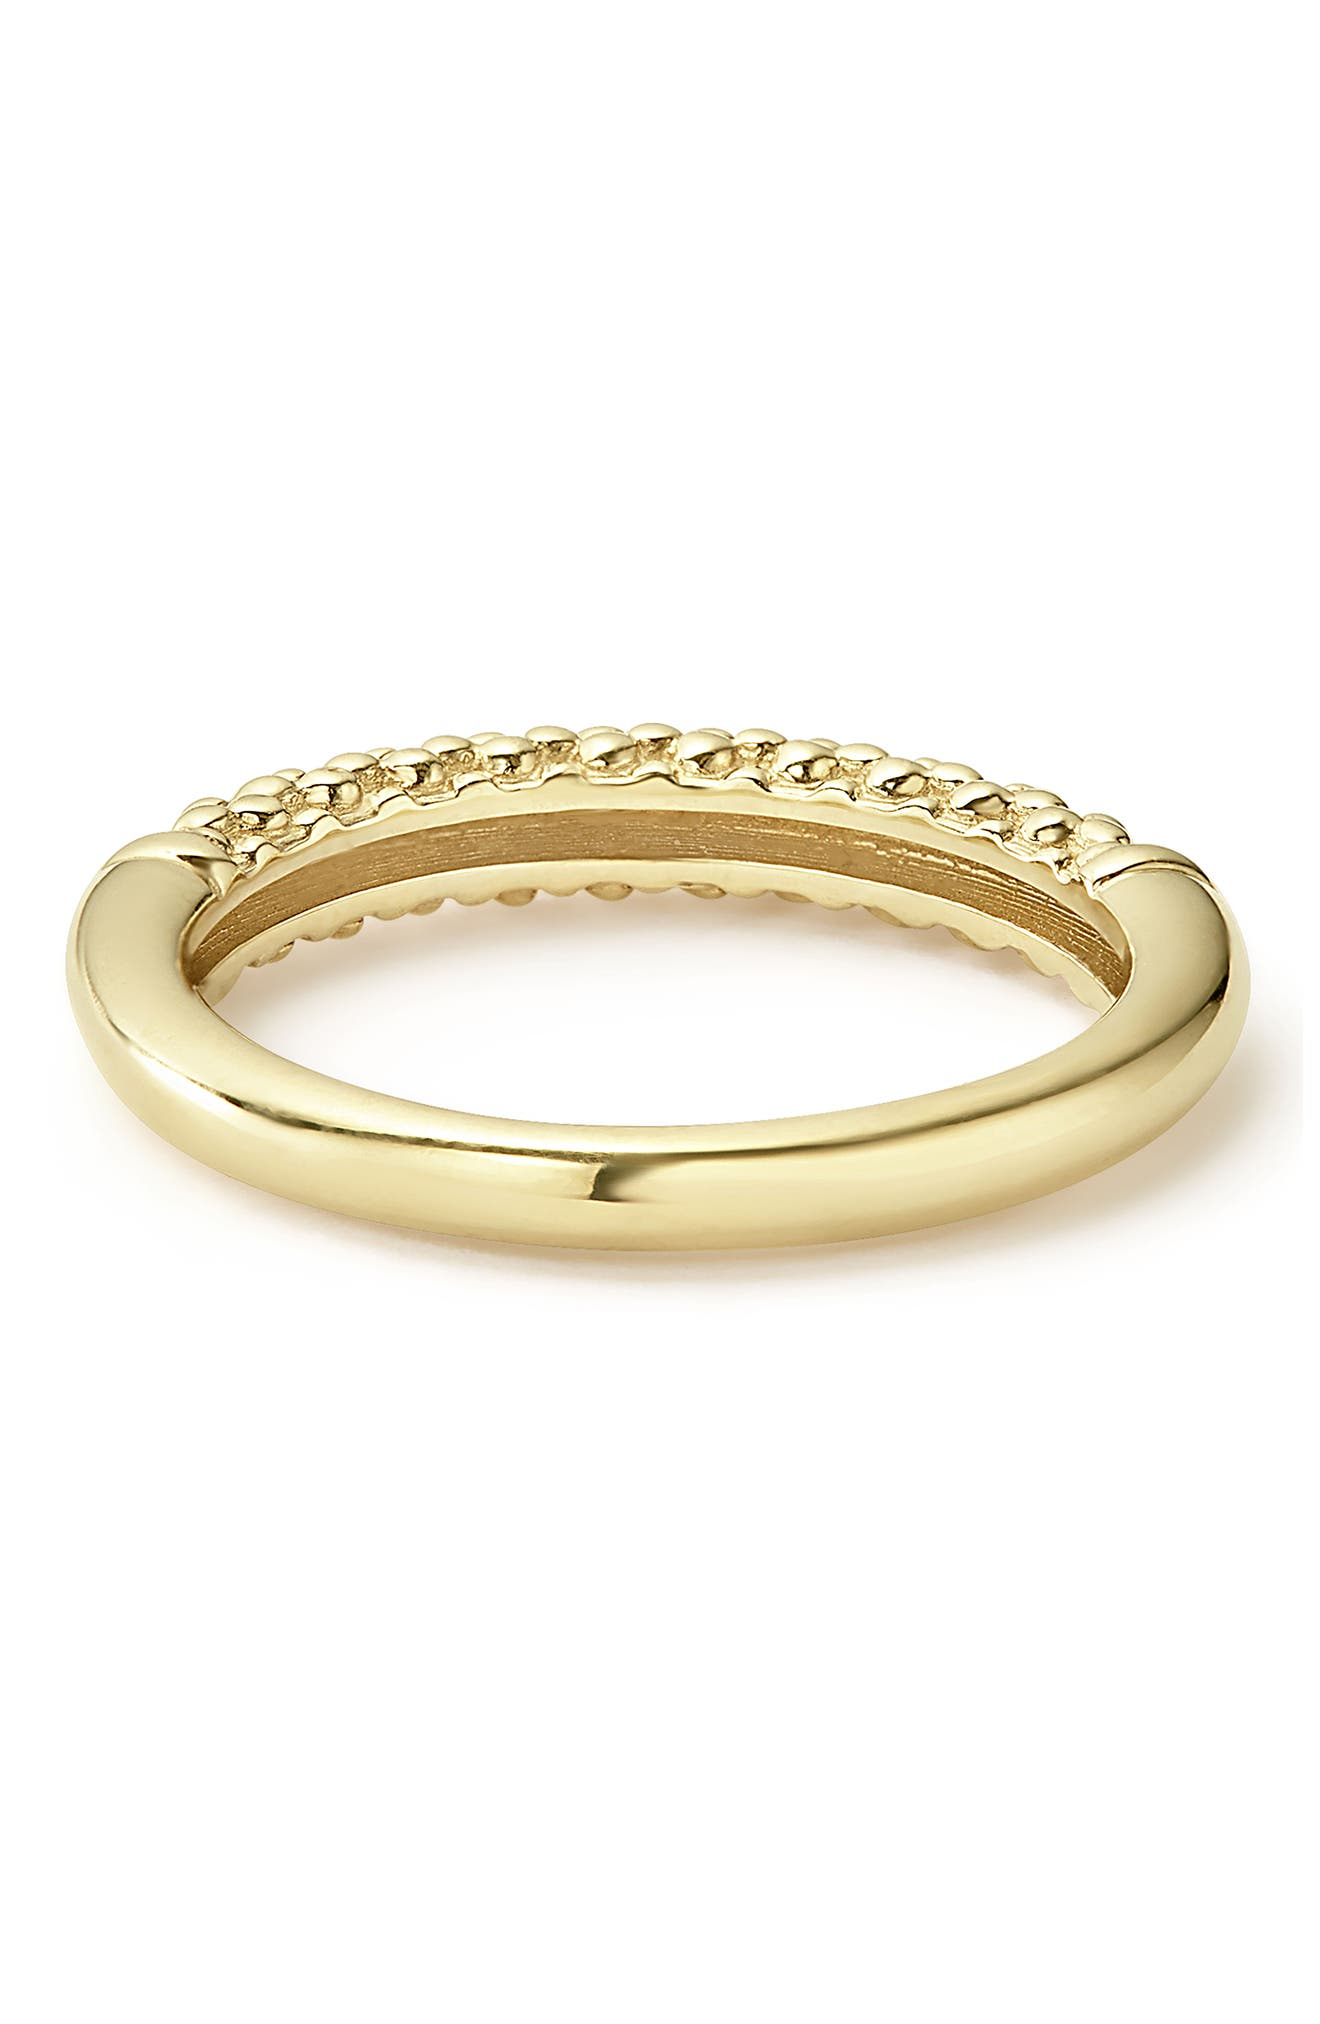 Caviar Band Ring,                             Alternate thumbnail 3, color,                             GOLD